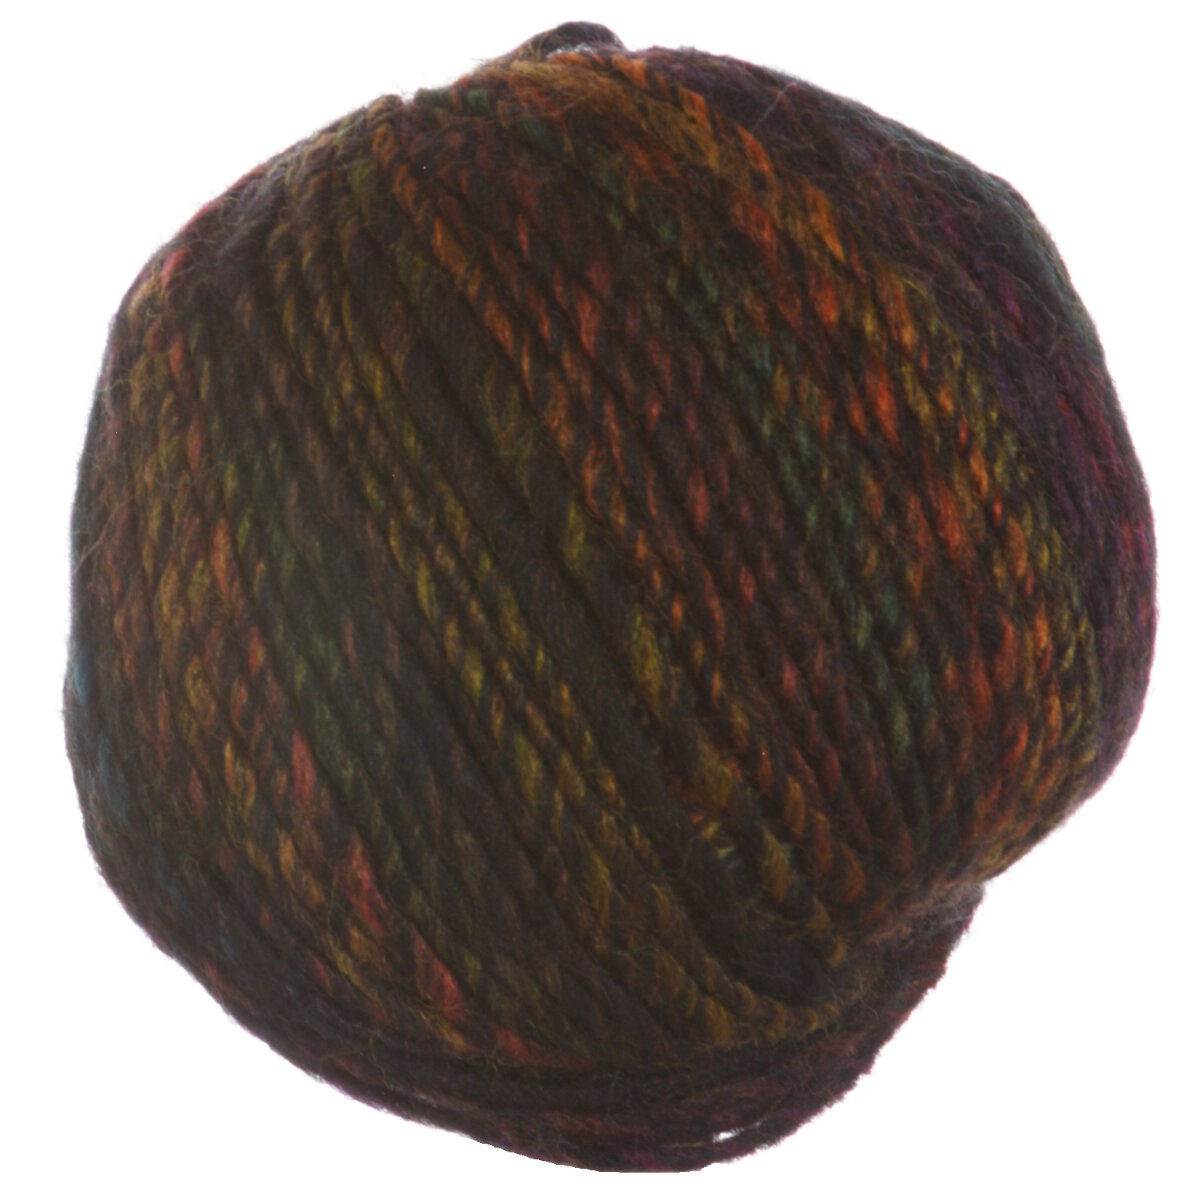 Knitting With Two Colors Carrying Yarn : Plymouth stained glazz yarn black colors at jimmy